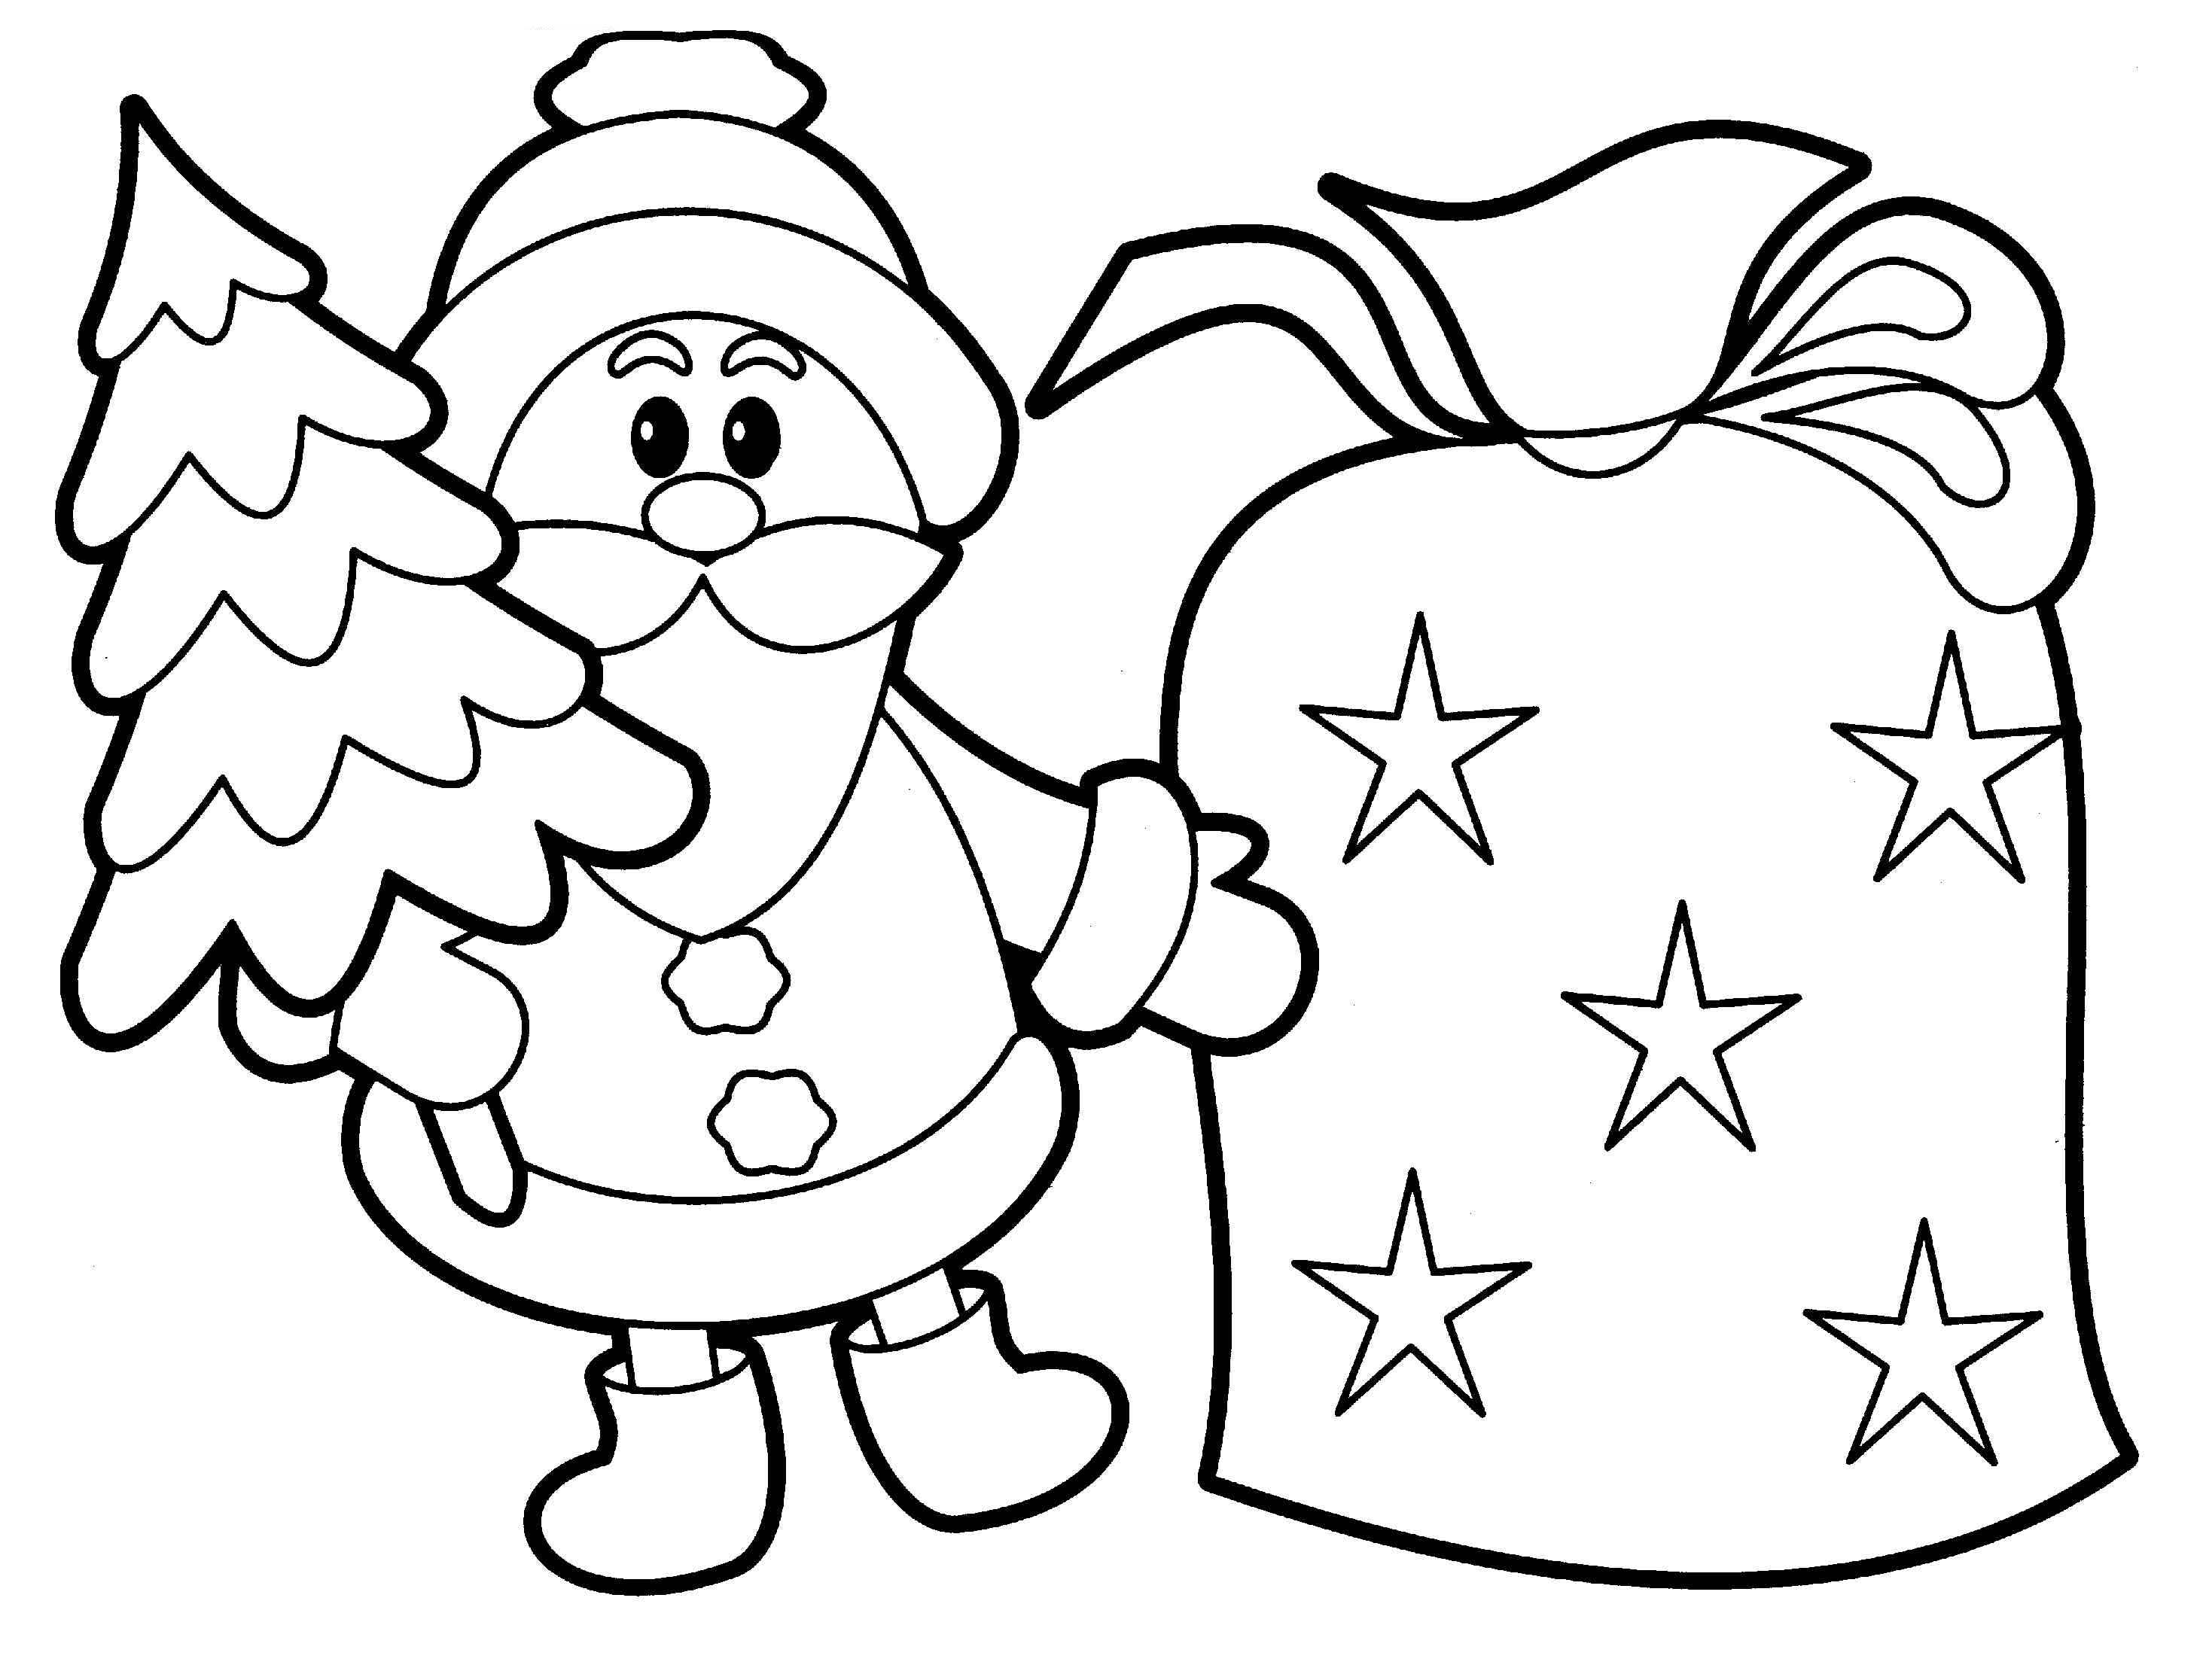 Christmas Coloring Page 20 Free Printable Coloring Pages For